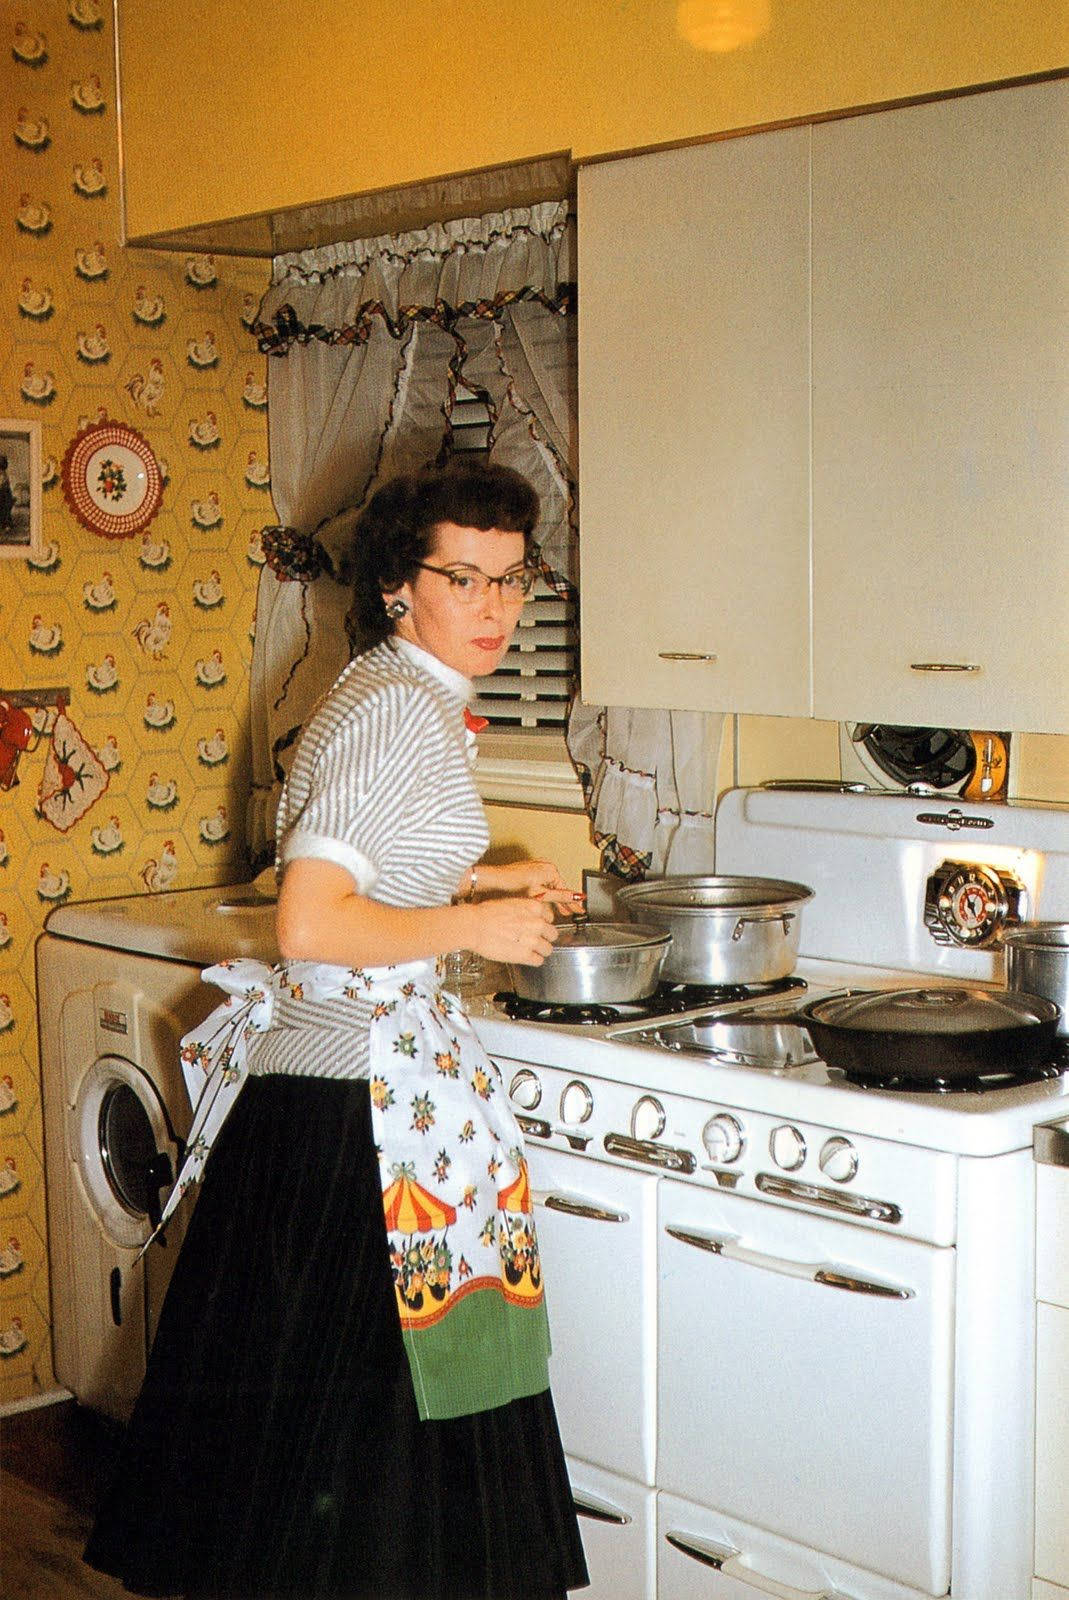 Vintage yellow kitchen | Vintage Lady cooking wearing an ...